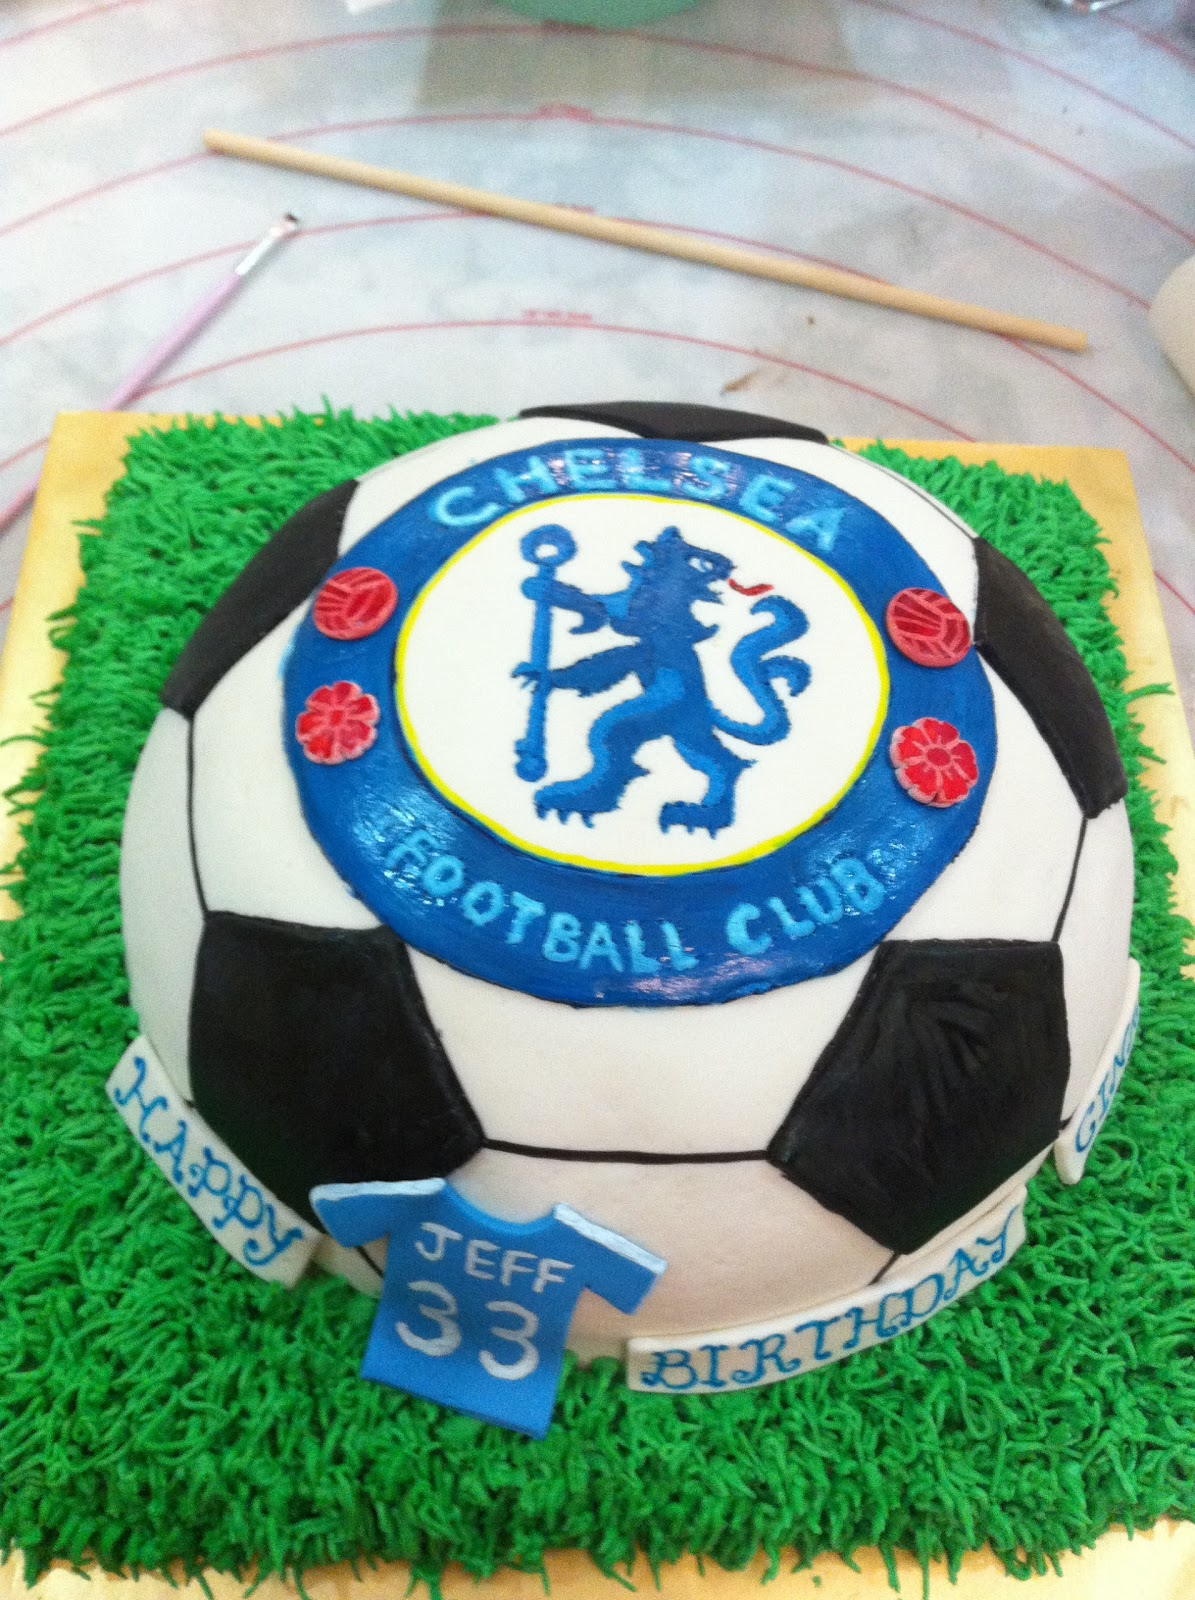 Football Cake Decorating Ideas How To Make : Home May de Cakes: The making of : Chelsea Soccer cake